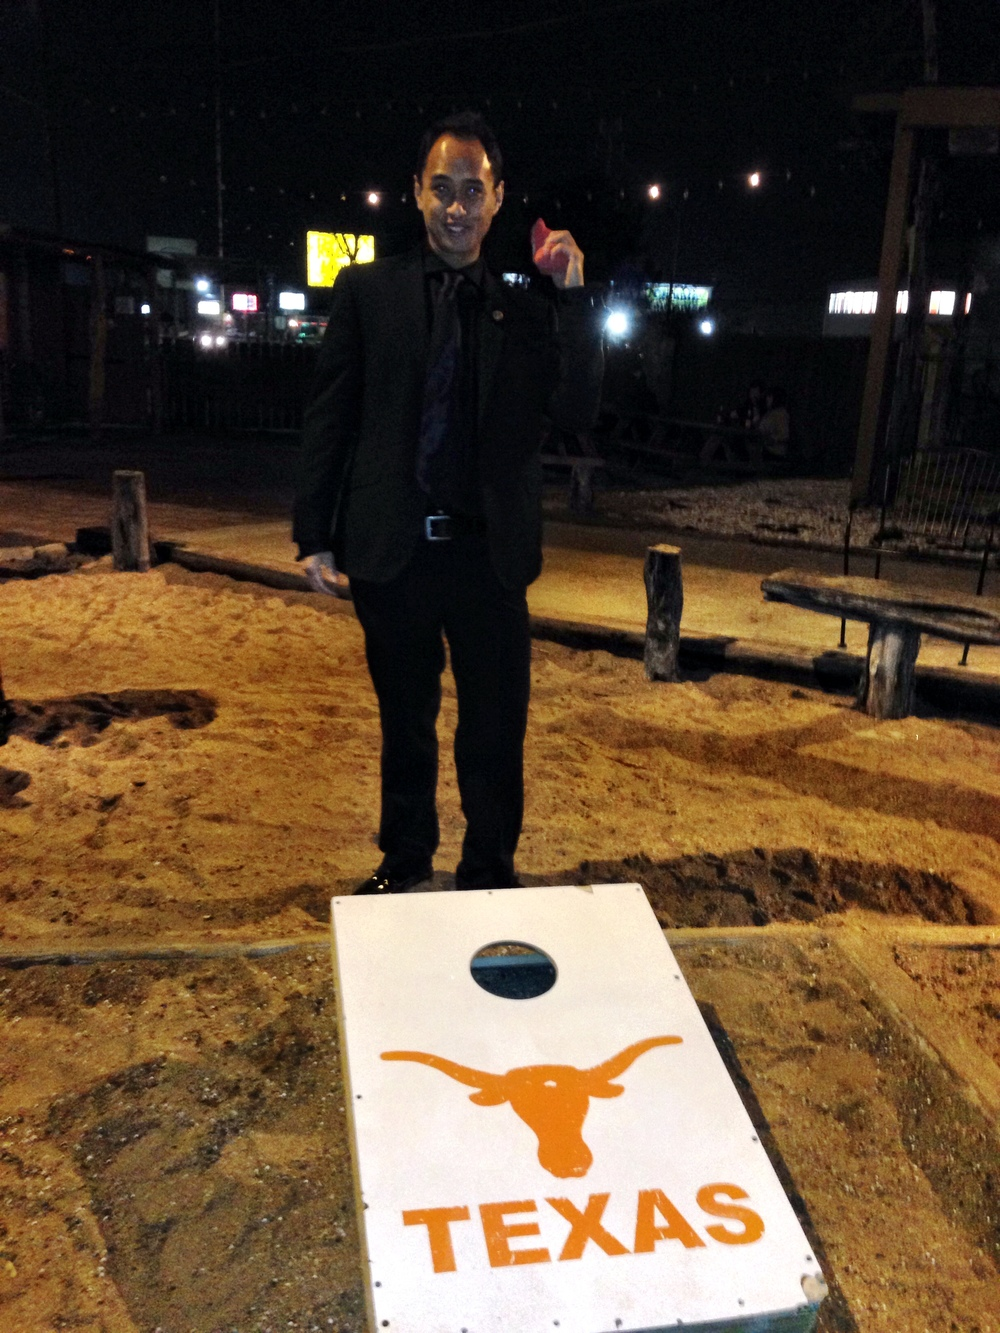 Suited up to play corn hole! Only in Austin...